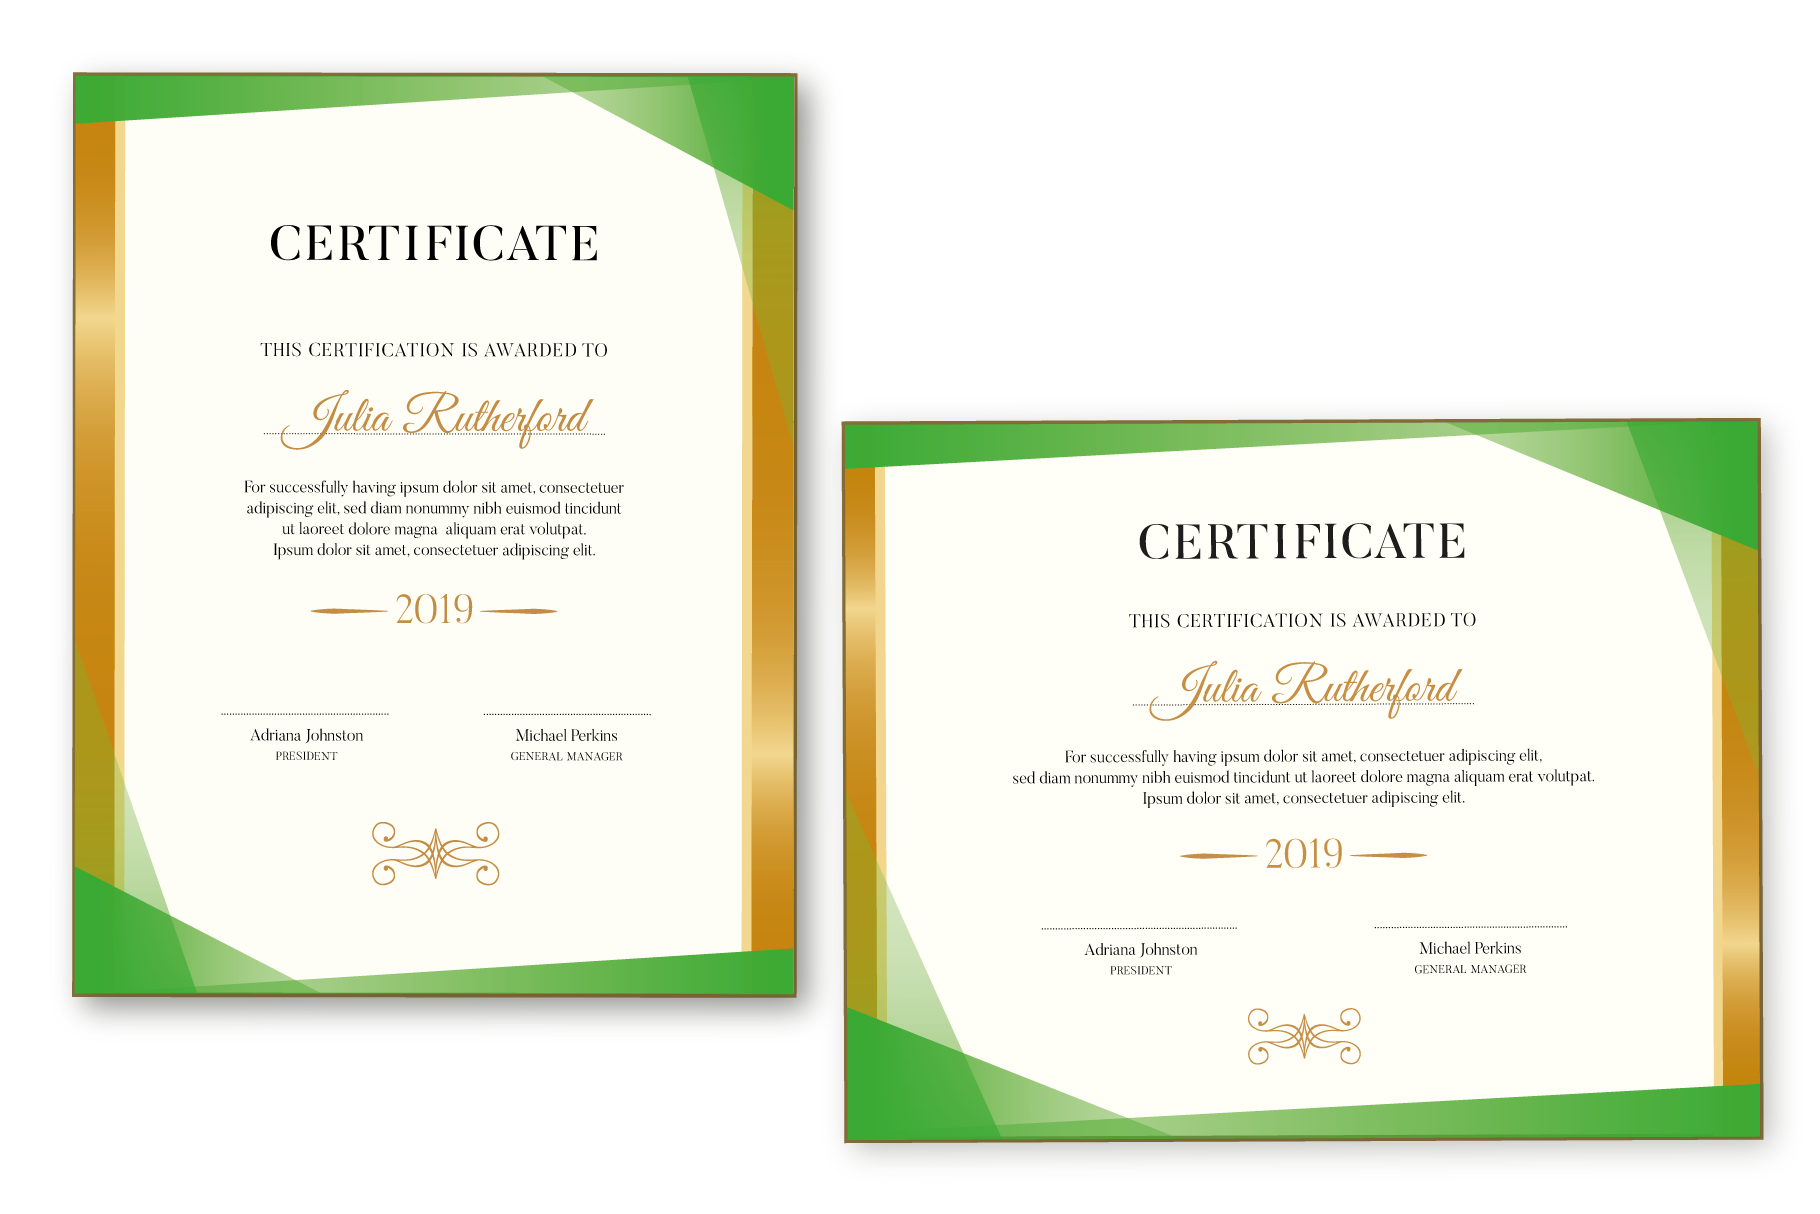 Certificate Template Editable example image 3